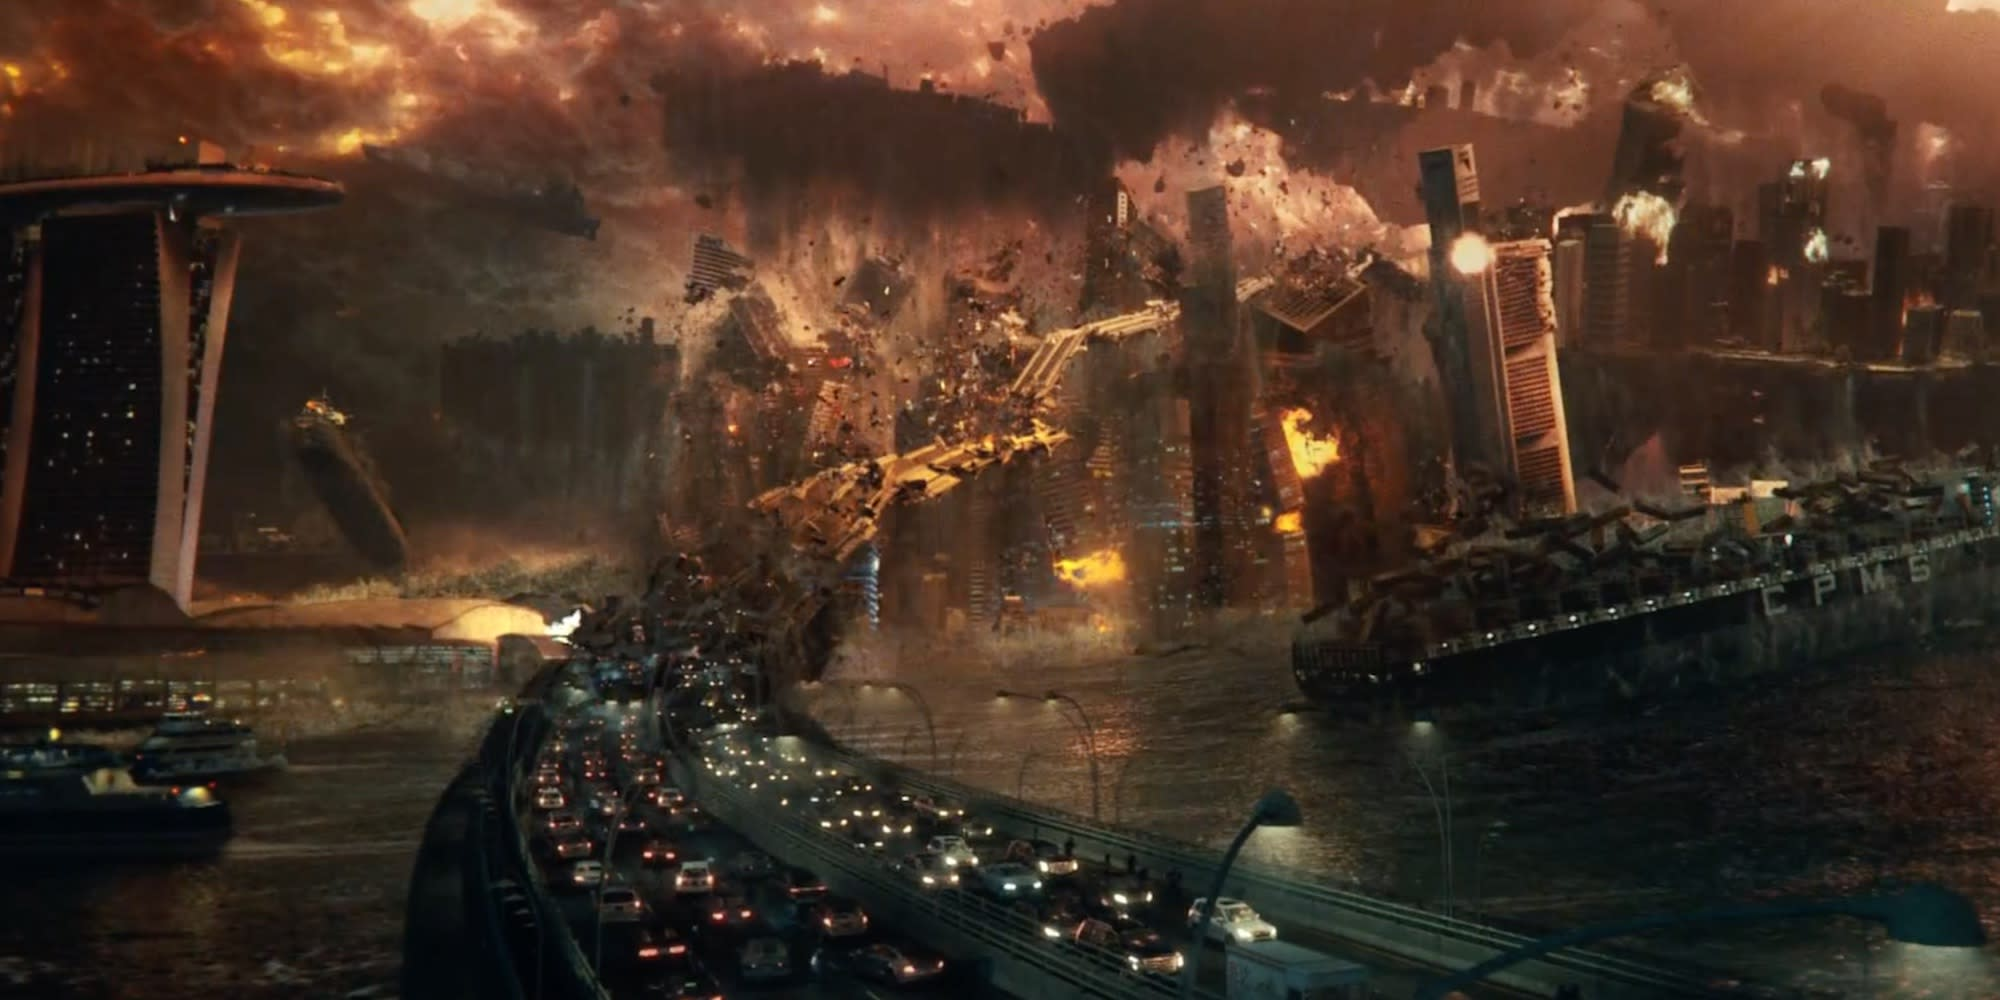 'Independence Day Resurgence' Lands With $100M Overseas Start; 'Dory' Nears $400M WW – Intl Box Office Final